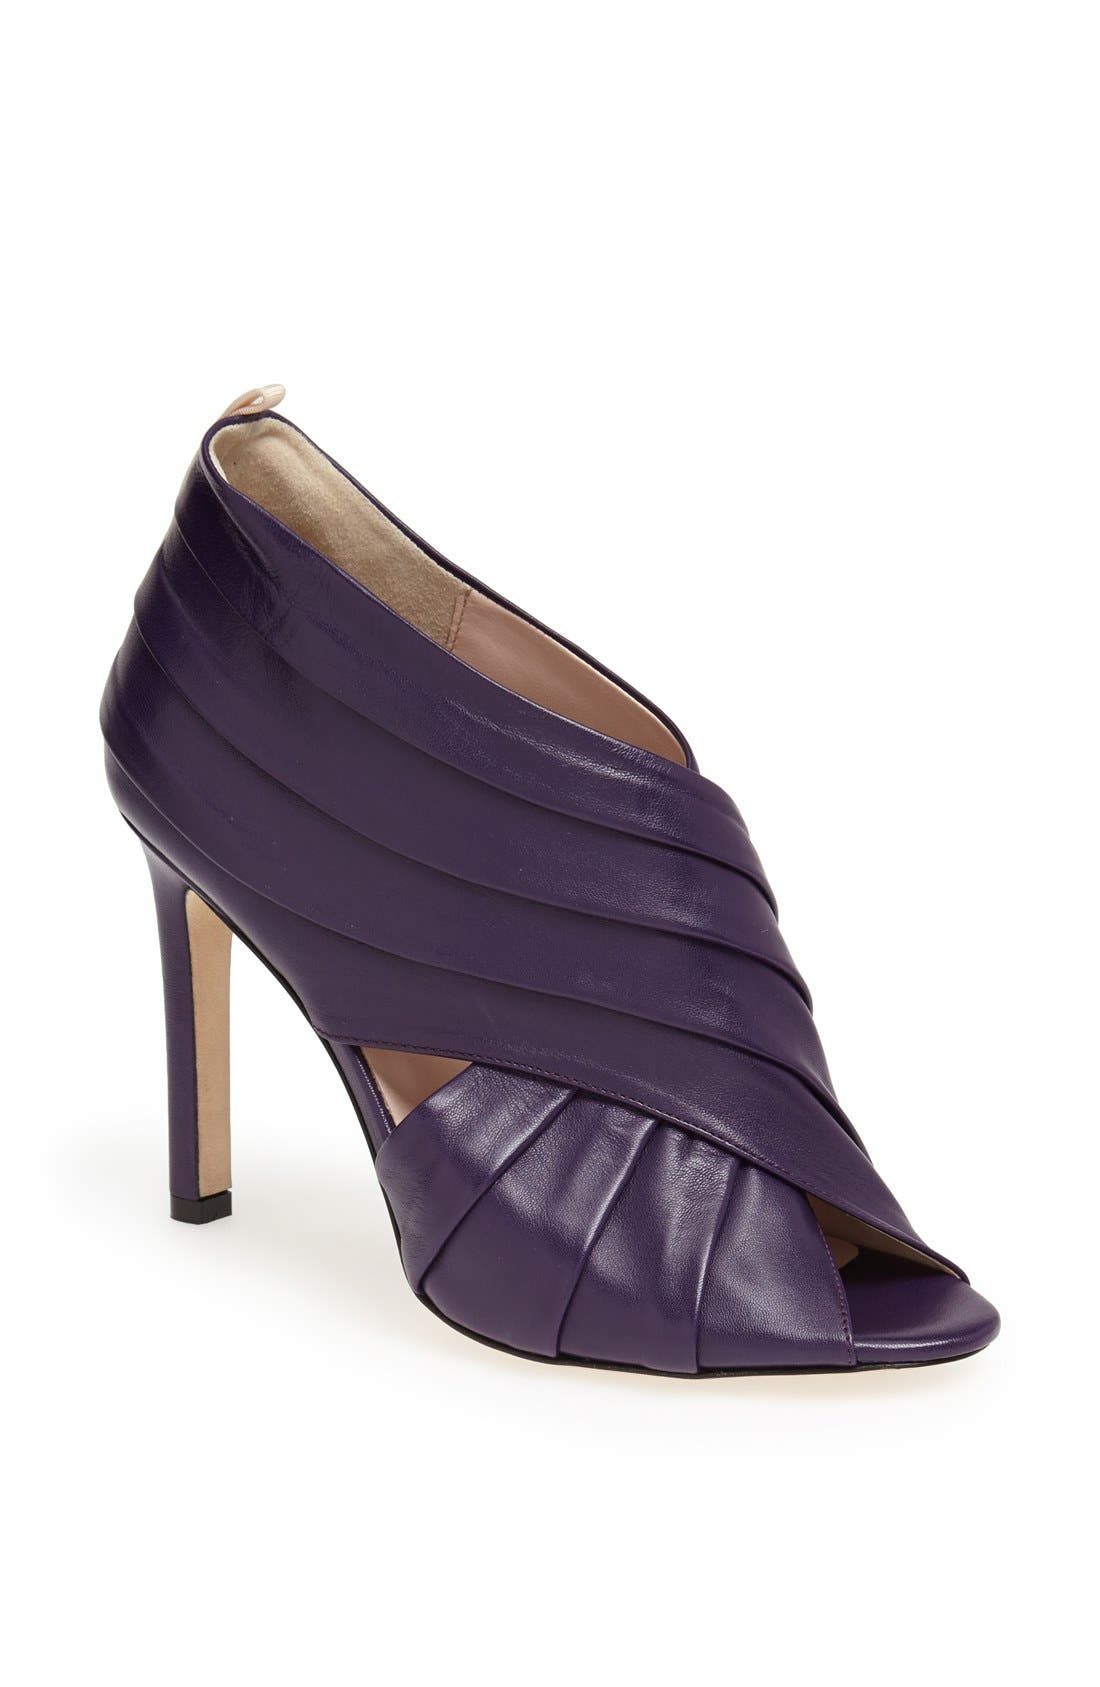 Alternate Image 1 Selected - SJP 'Alyssa' Peep-Toe Bootie